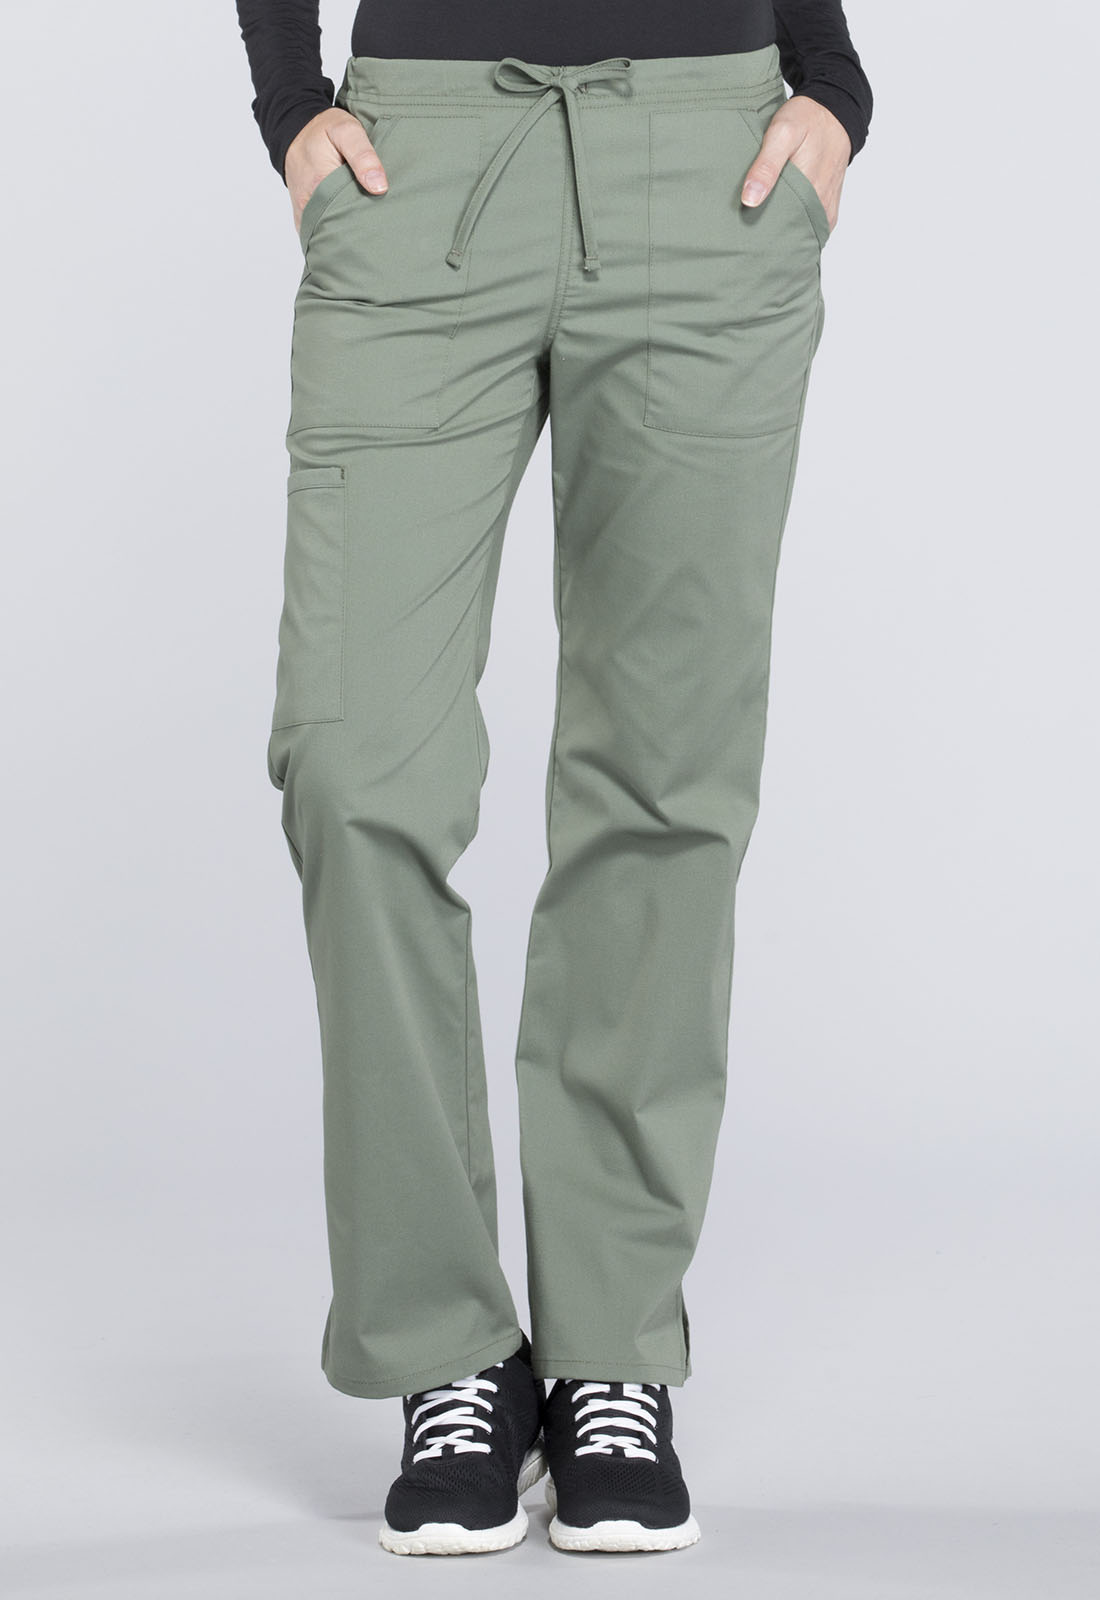 4a2a3449eff WW Professionals Mid Rise Straight Leg Drawstring Pant in Olive (Petite)